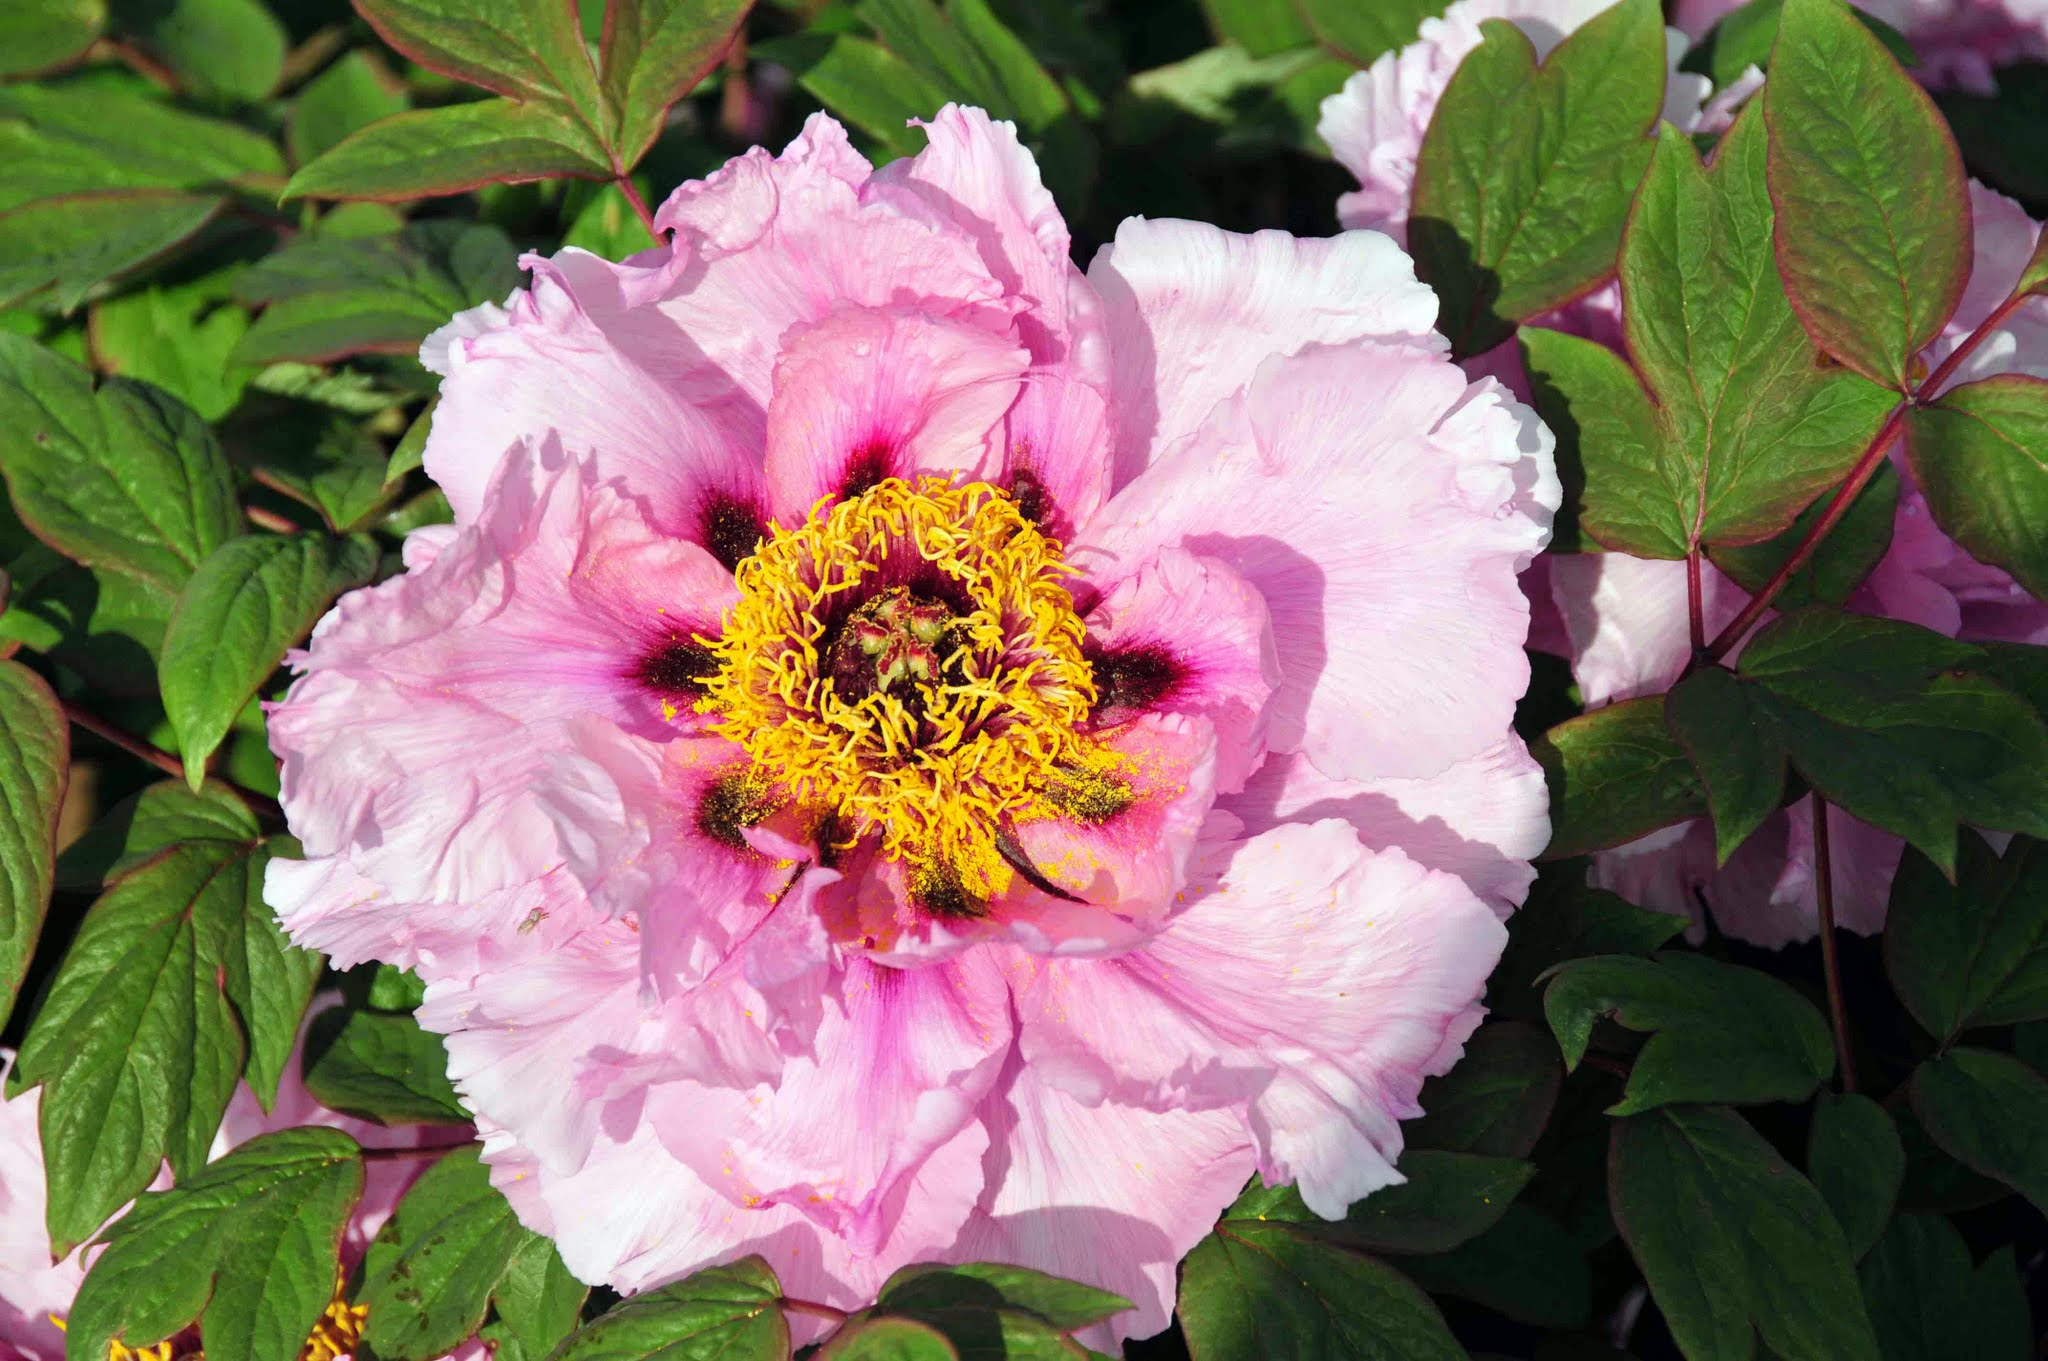 Planting Tree Peonies from Cricket Hill Garden - The Martha Stewart Blog